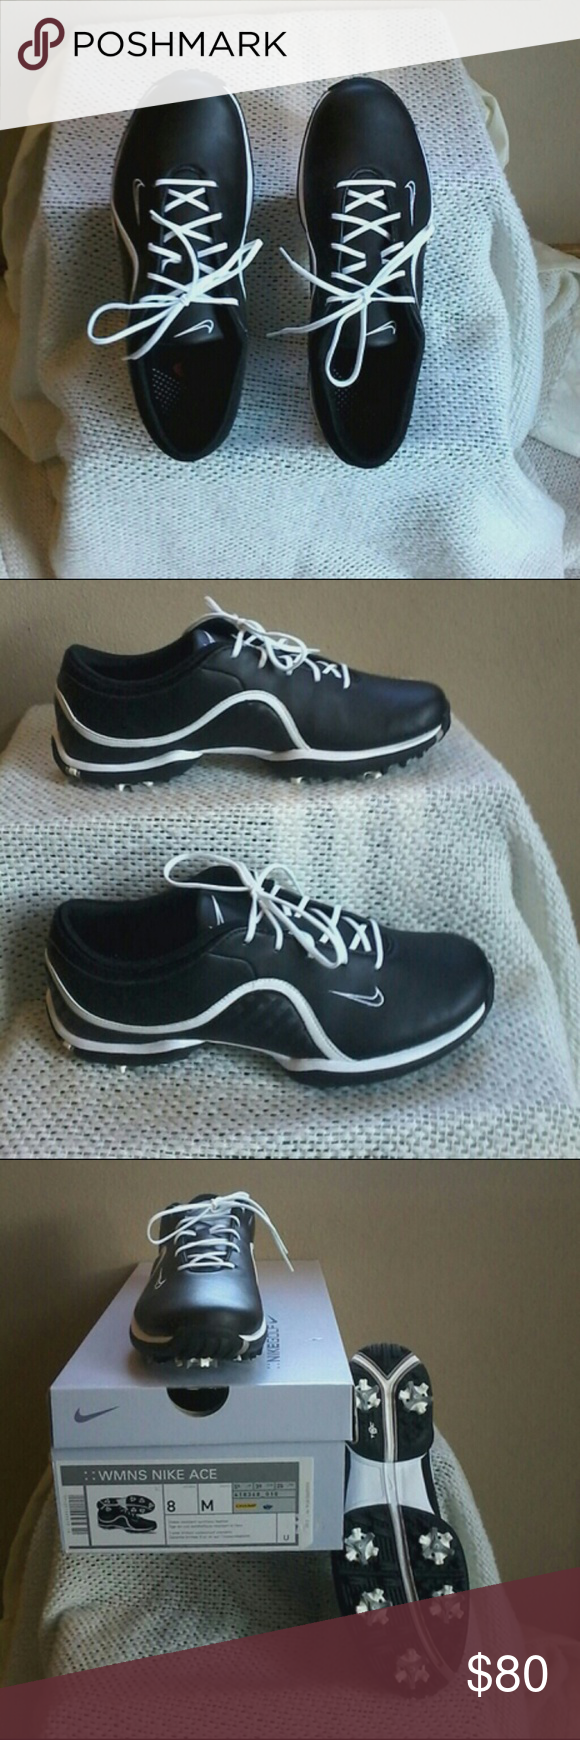 Nike Golf Shoes Water resistant synthetic leather.  Brand new.  Never worn. Nike Shoes Athletic Shoes